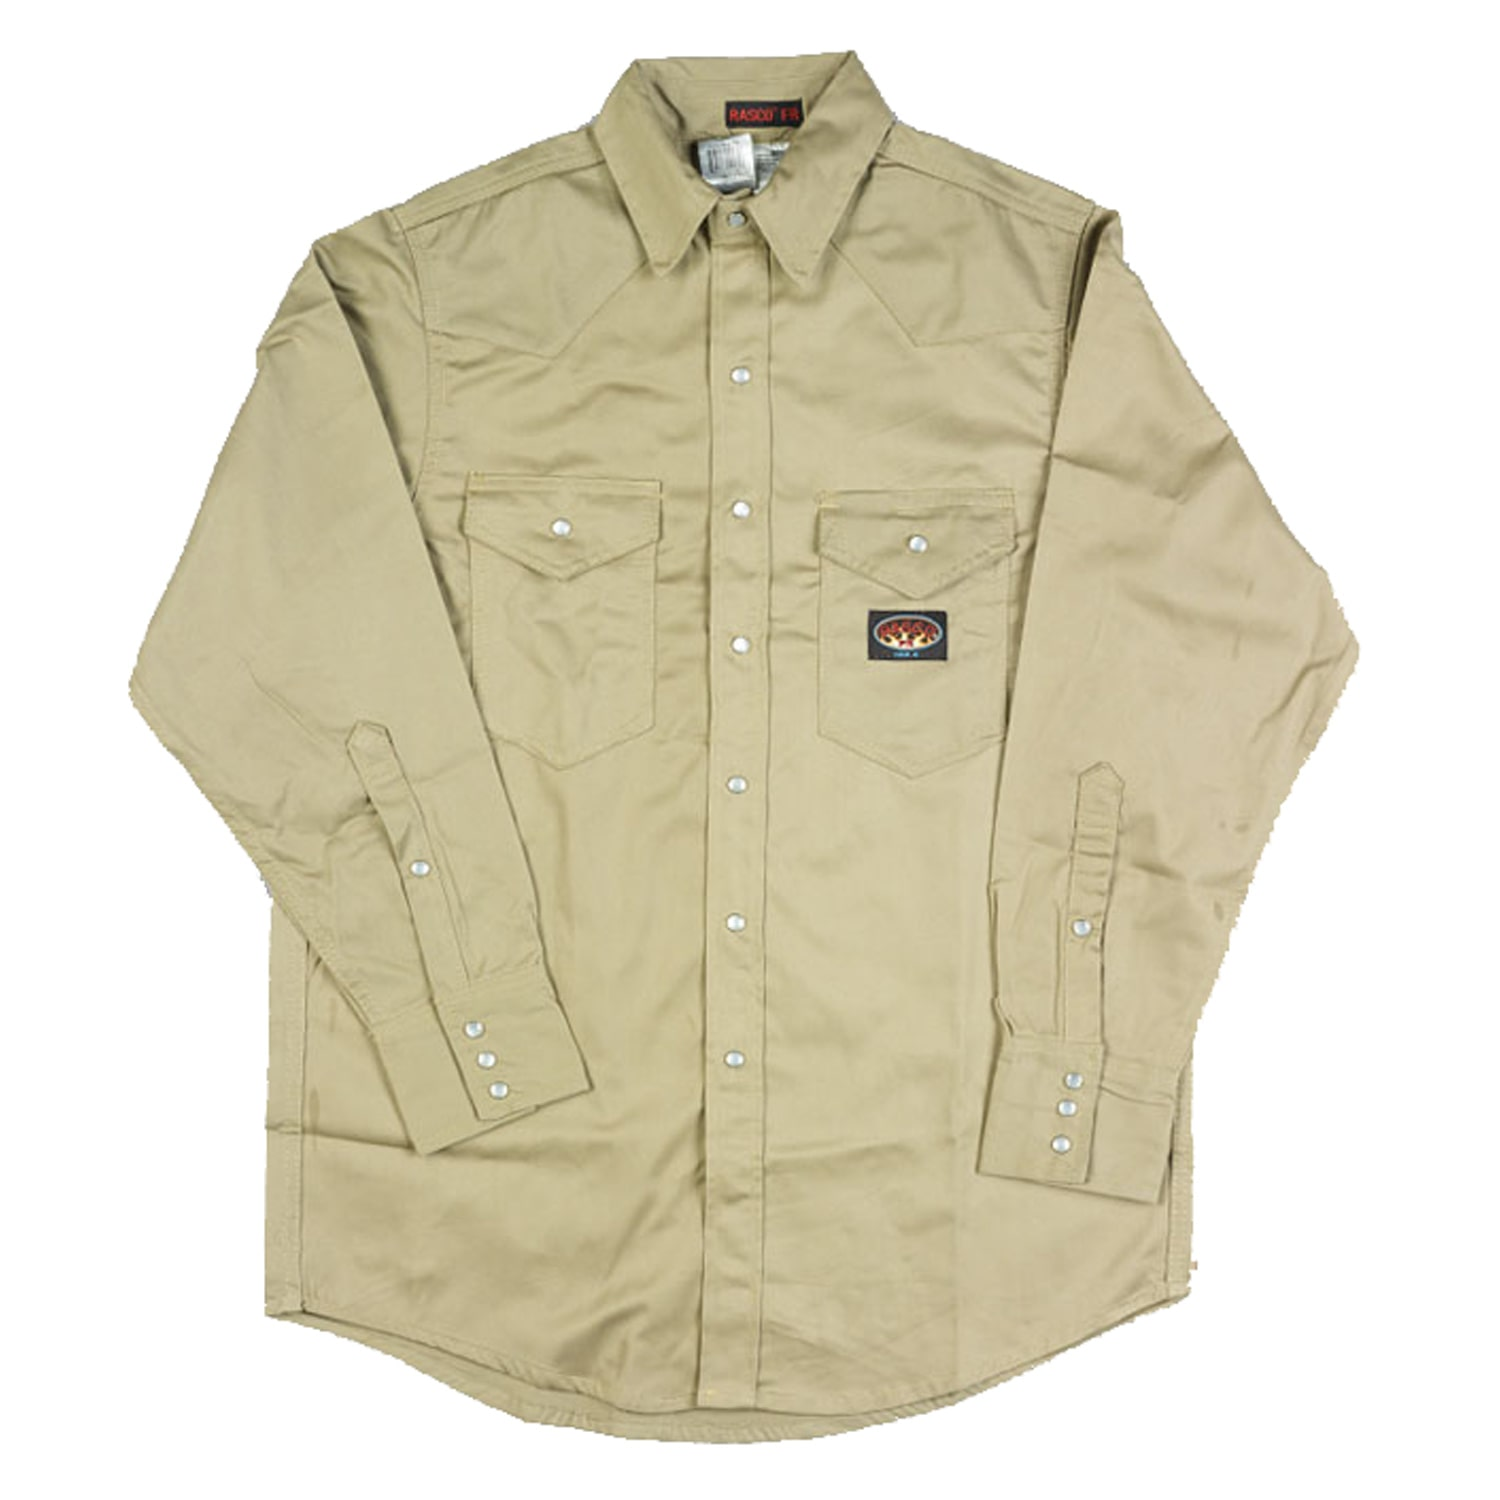 Rasco FR Khaki Lightweight Work Shirt  Rasco FR750, Rasco FR FR750, Flame Resistant Rasco, Fire Retardant Rasco, Flame Retardant Rasco Shirt, Rasco FR Shirt, Rasco FR Work Shirt, Rasco Work, Rasco Work Shirt, Rasco Lightweight, Rasco Lightweight Work Shirt, Rasco FR, Khaki Rasco, Fire Retardant Rasco Shirt, Cheap FR Shirt, Discount Rasco, Discount FR, Cheap Rasco, Rasco FRC, FR Clothing, Fire Retardant Clothing, Flame Resistant Clothing, FR, FRC, Safety Apparel, Protective Clothing, Arc Flash Protective Clothing, Discount FR Clothing, Flame Resistant Rasco, Petrochemical Clothing, Contractor FR Clothing, ASTM F1506 Classified, Osha Approved, Treated Cotton, 100% Cotton FR Shirt, 100% FR Cotton,NFPA 70E,  NFPA 2112 Classified,Arc Blast, Electrical Clothing, Plant Worker Clothes